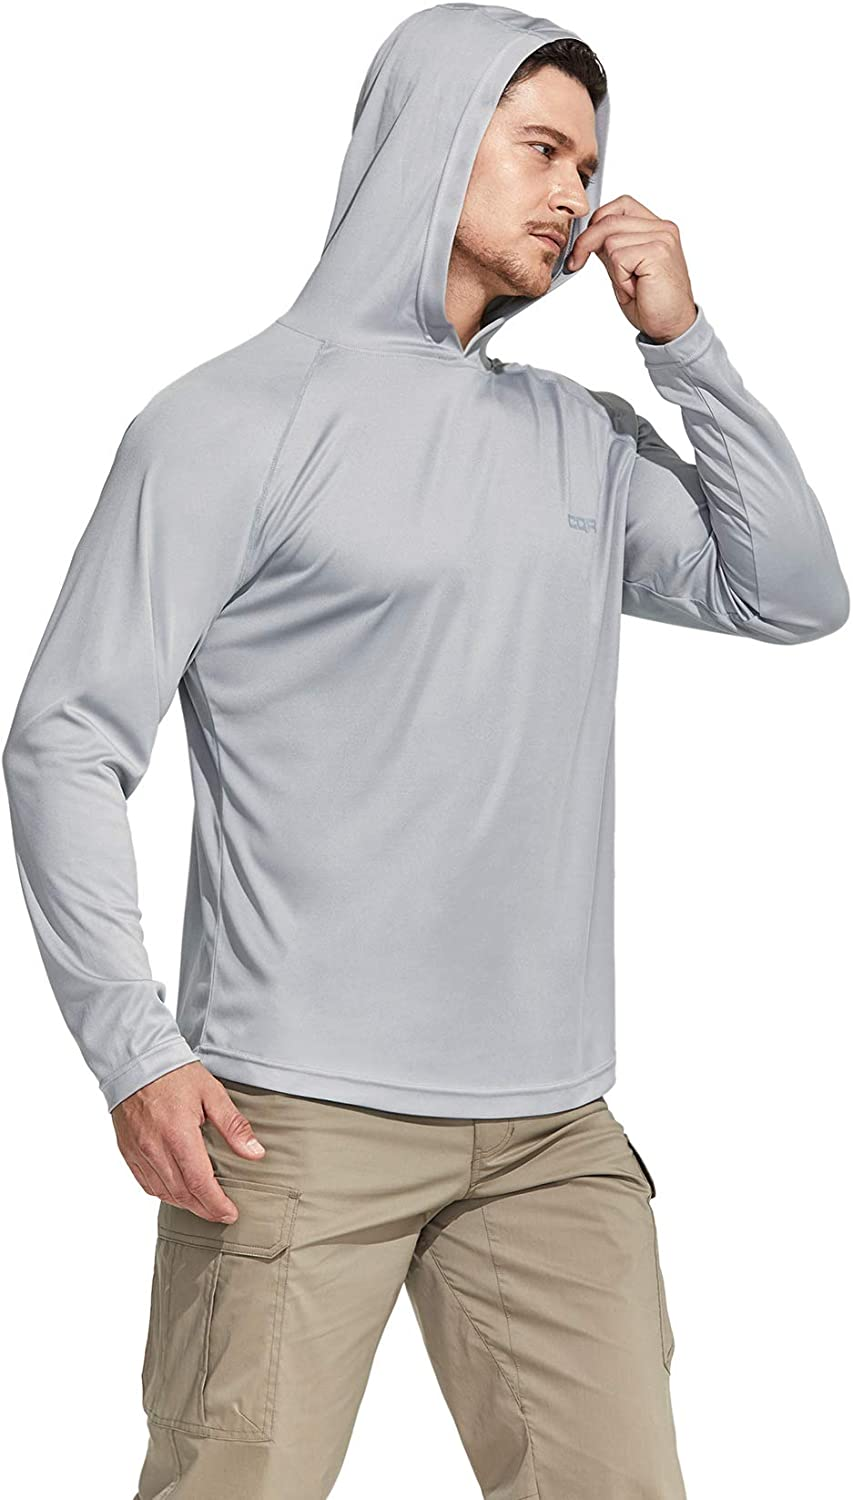 UV//SPF Quick Dry Loose-Fit Outdoor Shirts Performance Running Workout Shirt Pull Over Long Sleeve Hoodie CQR Mens UPF 50